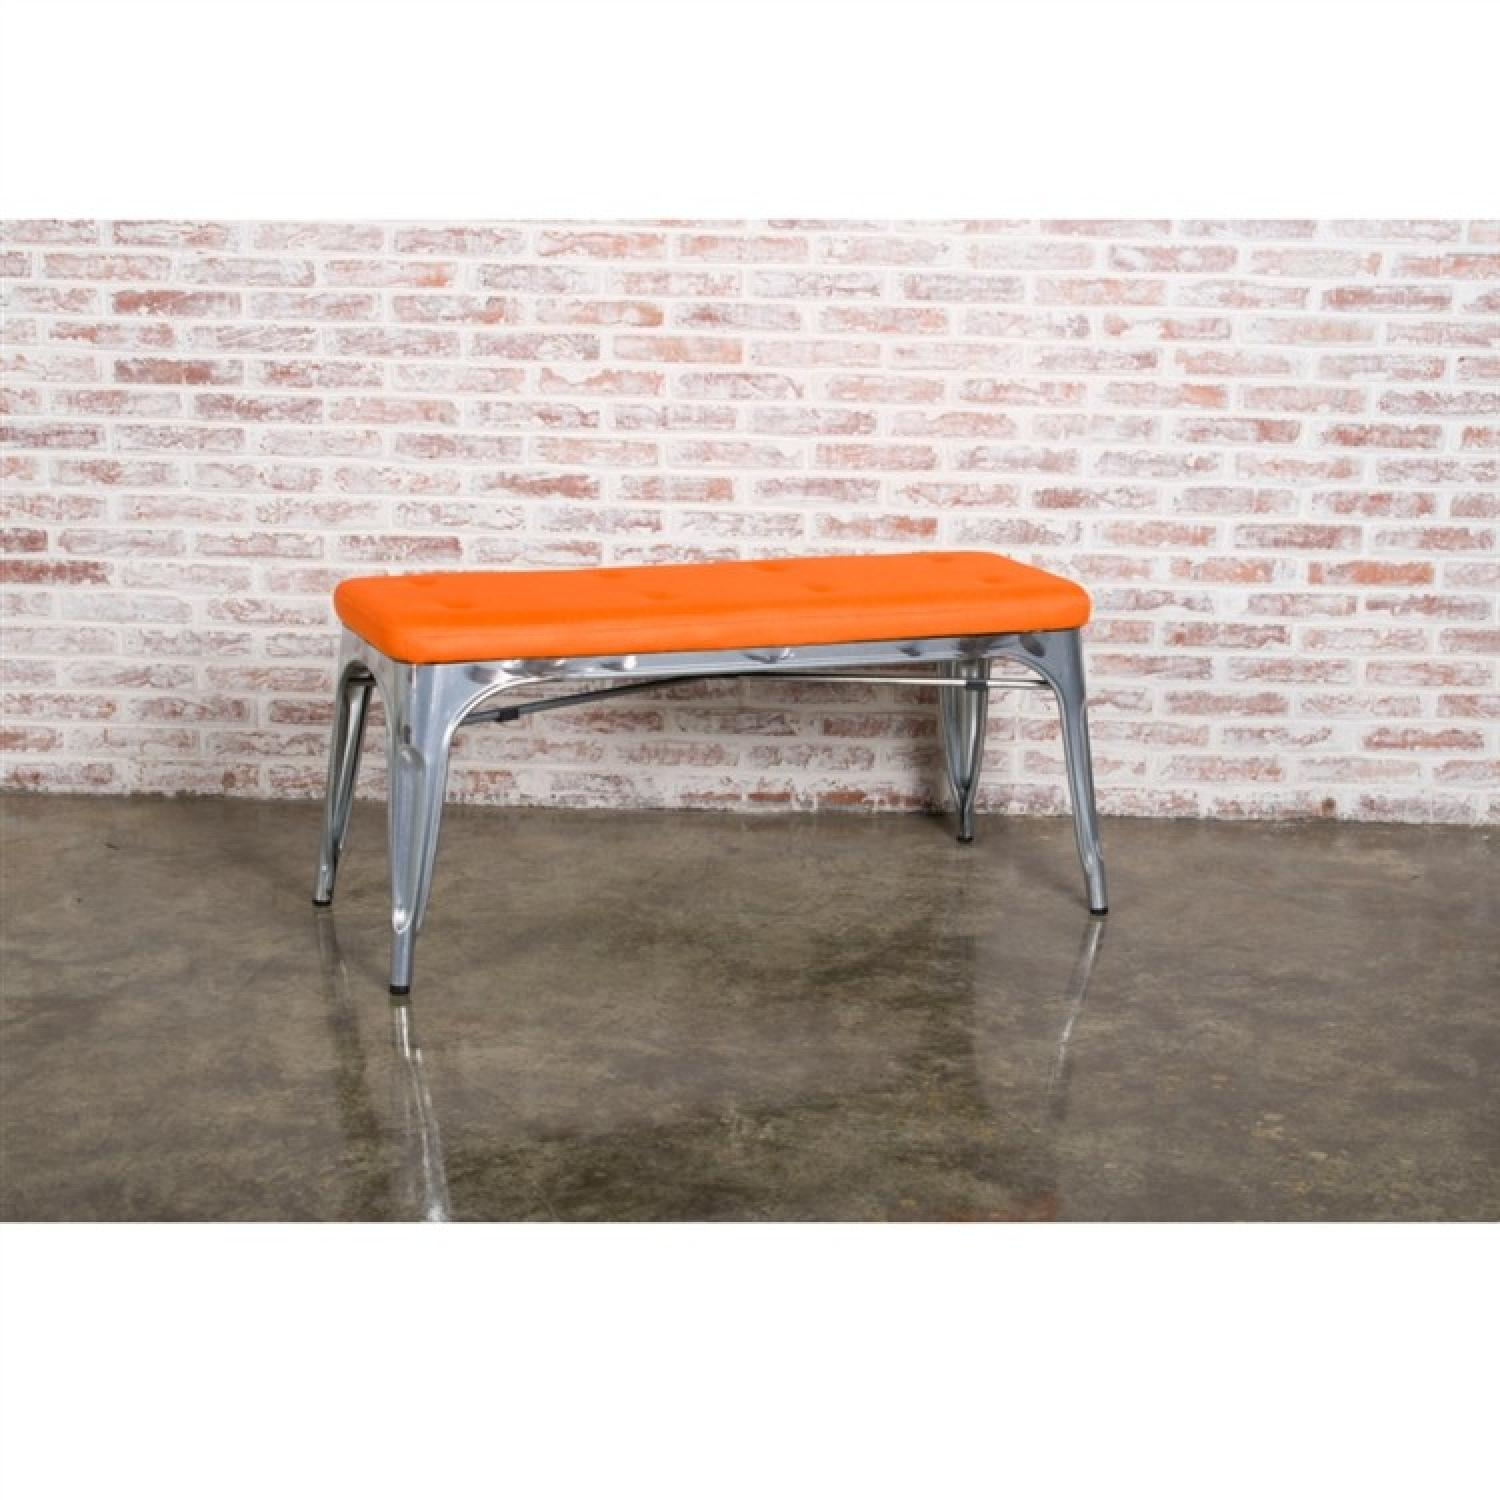 Bench in Galvanized Steel w/ Orange Mesh Cushion - image-2